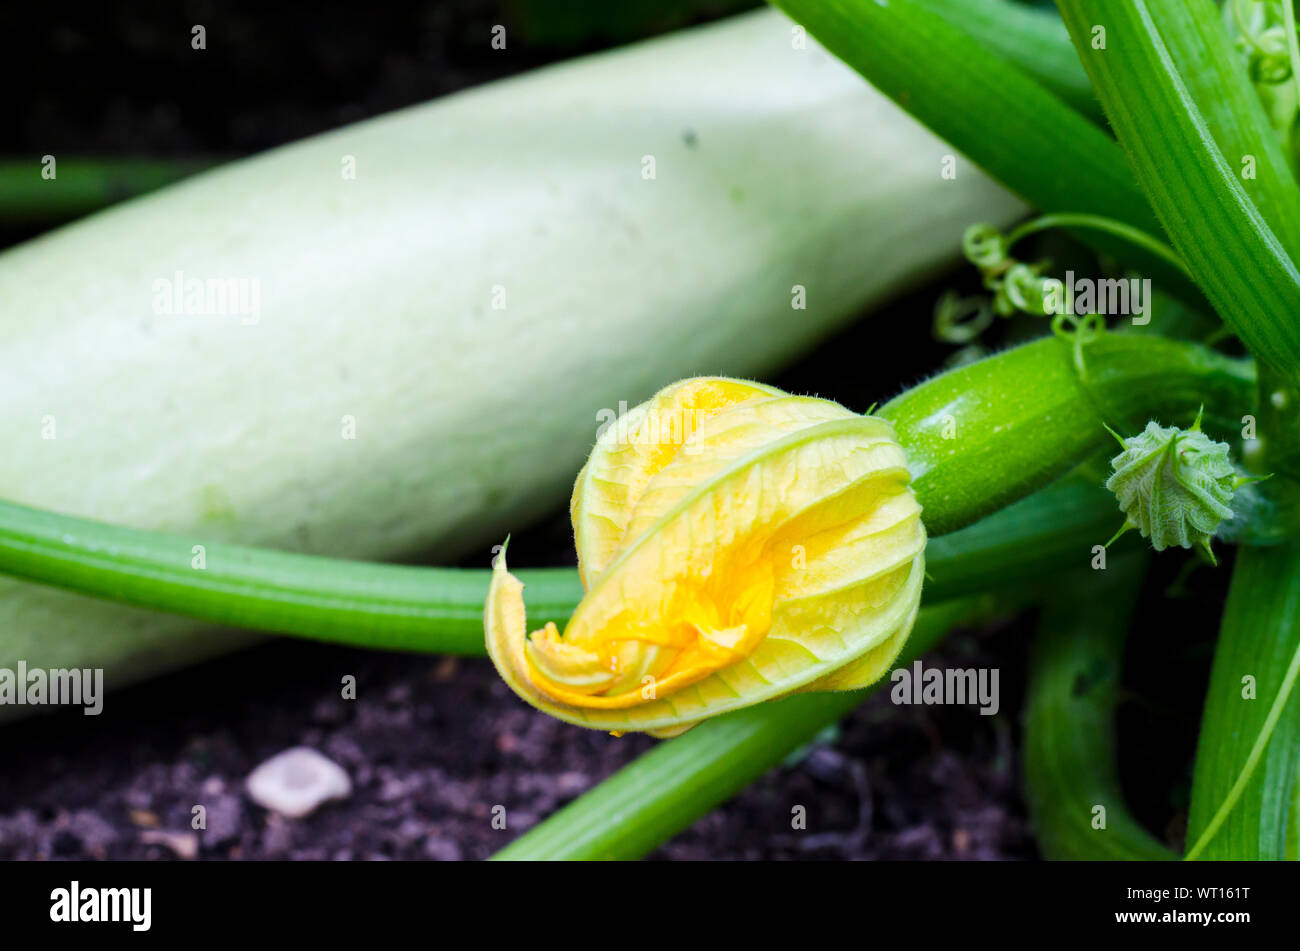 Fruit of young zucchini with flower growing on bush. Studio Photo Stock Photo